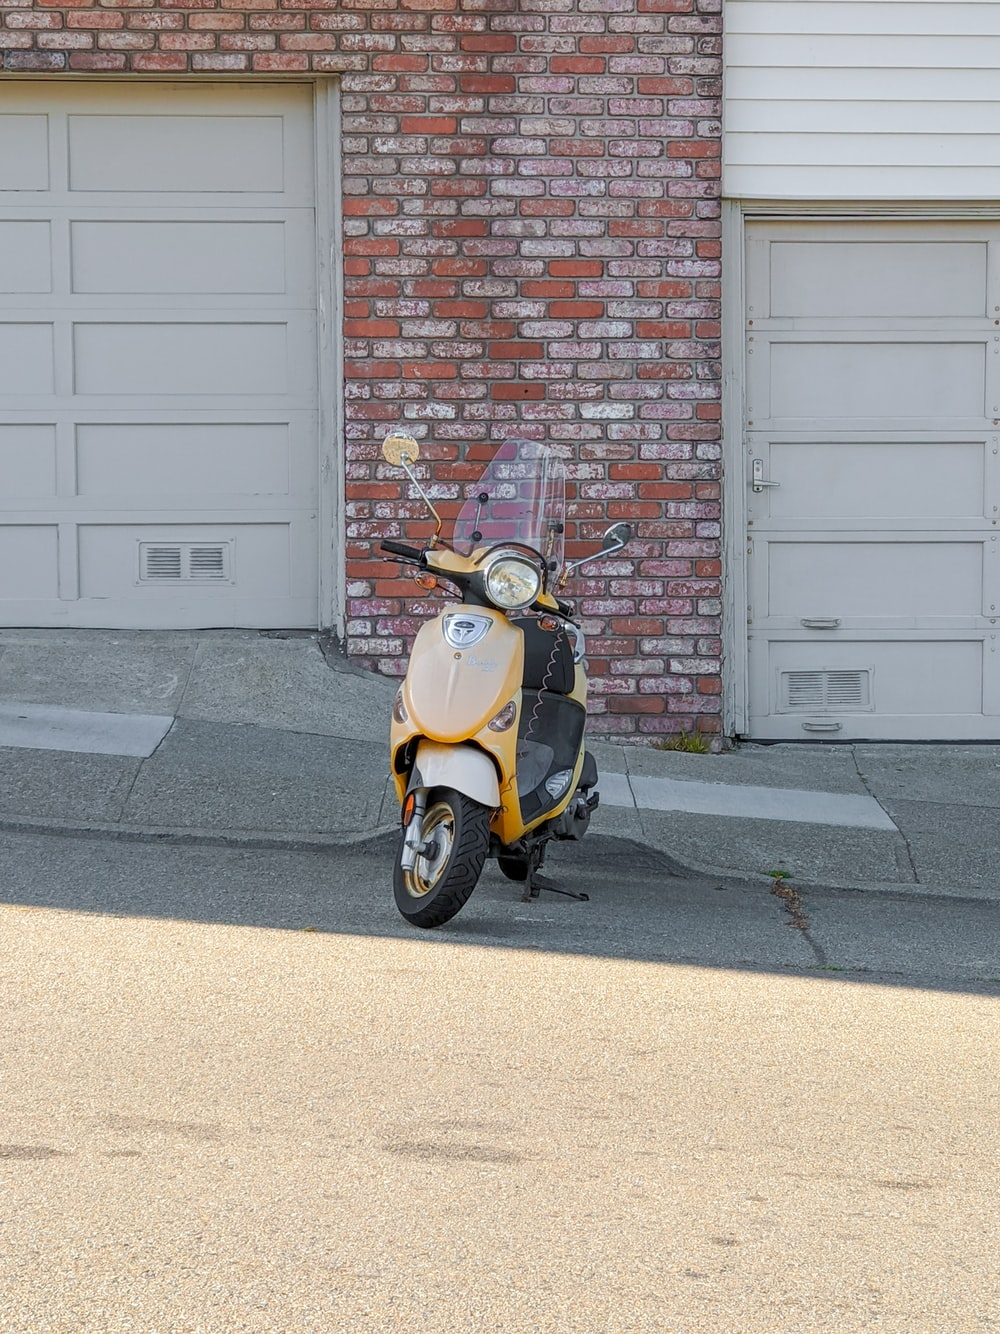 yellow and black motor scooter parked beside brown brick wall